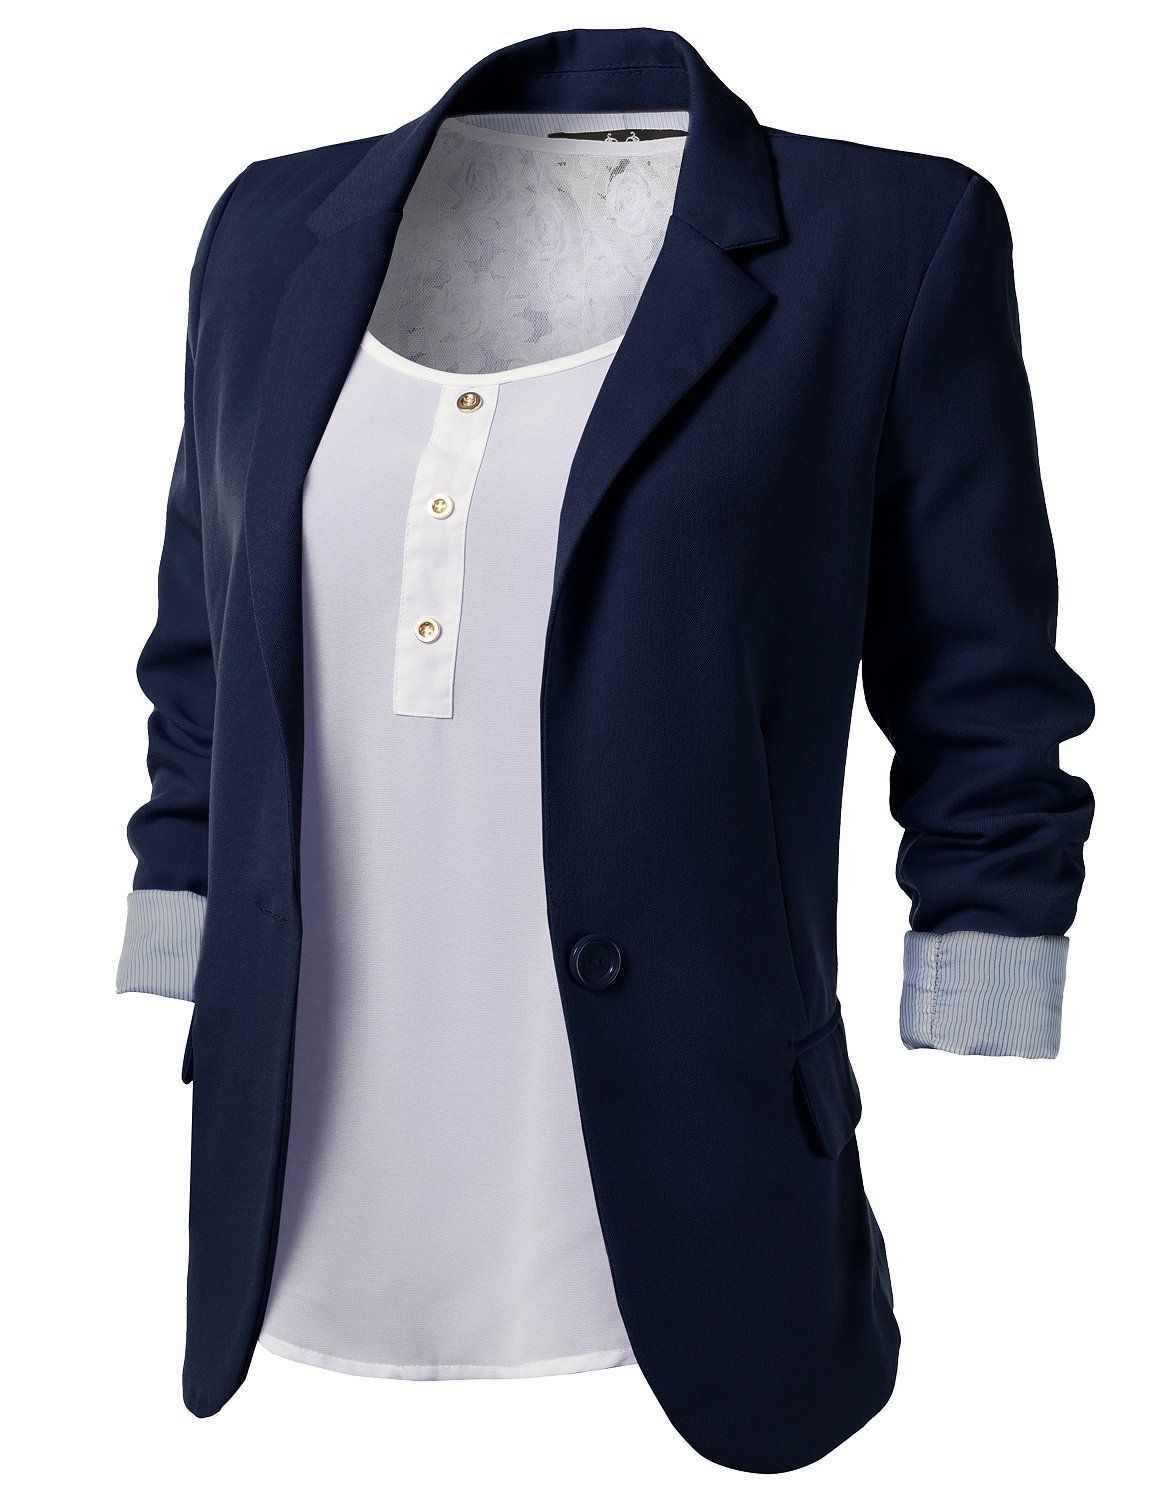 Bundle up in Dillard's women's jacket and vest collections available in the latest styles. From women's blazers, lightweight jackets, printed jackets and work-ready jackets we have all your women's jacket and vest needs covered.